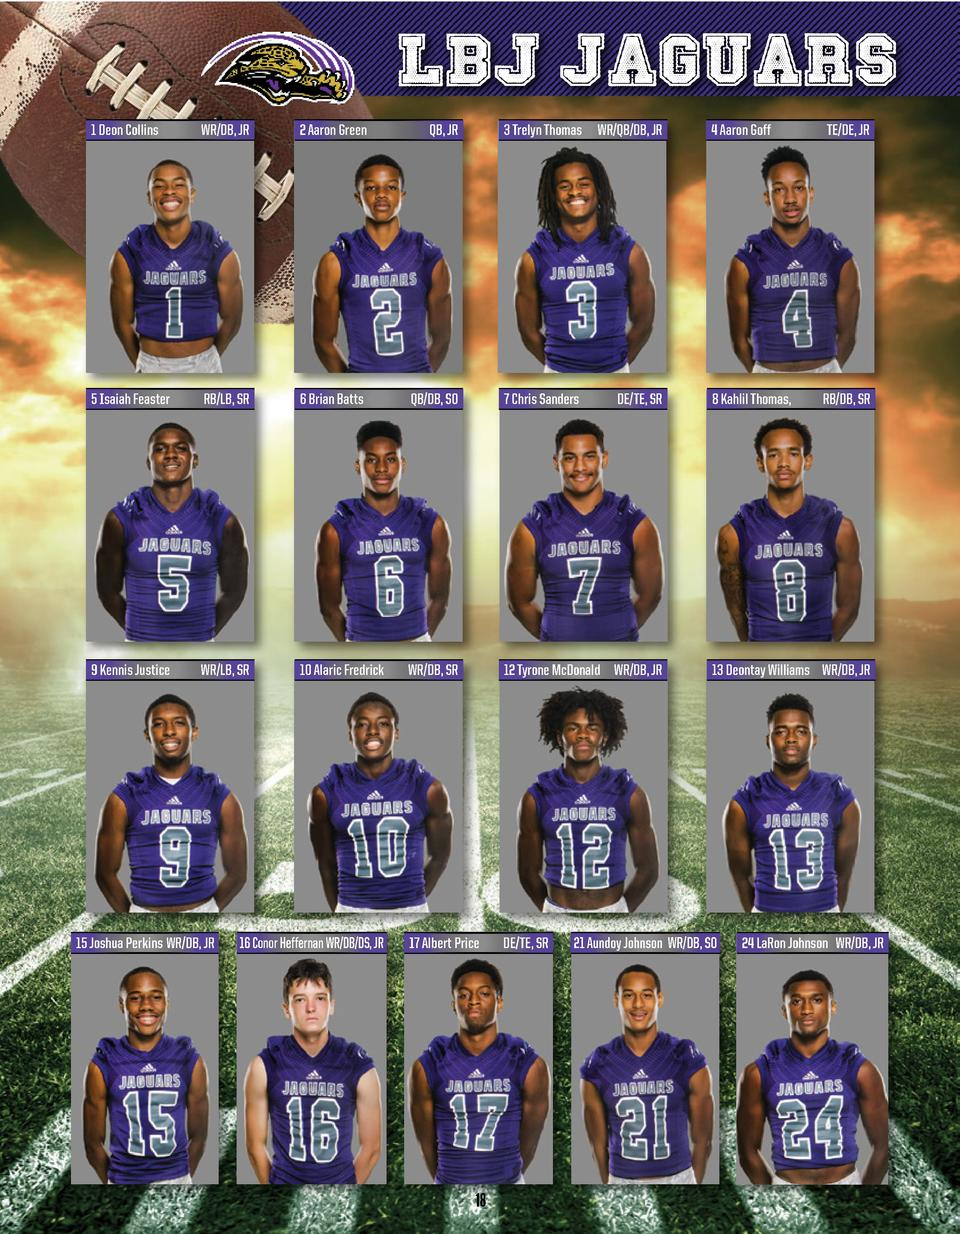 1 Deon Collins  WR DB, JR  2 Aaron Green  QB, JR  5 Isaiah Feaster  RB LB, SR  6 Brian Batts  9 Kennis Justice  WR LB, SR ...